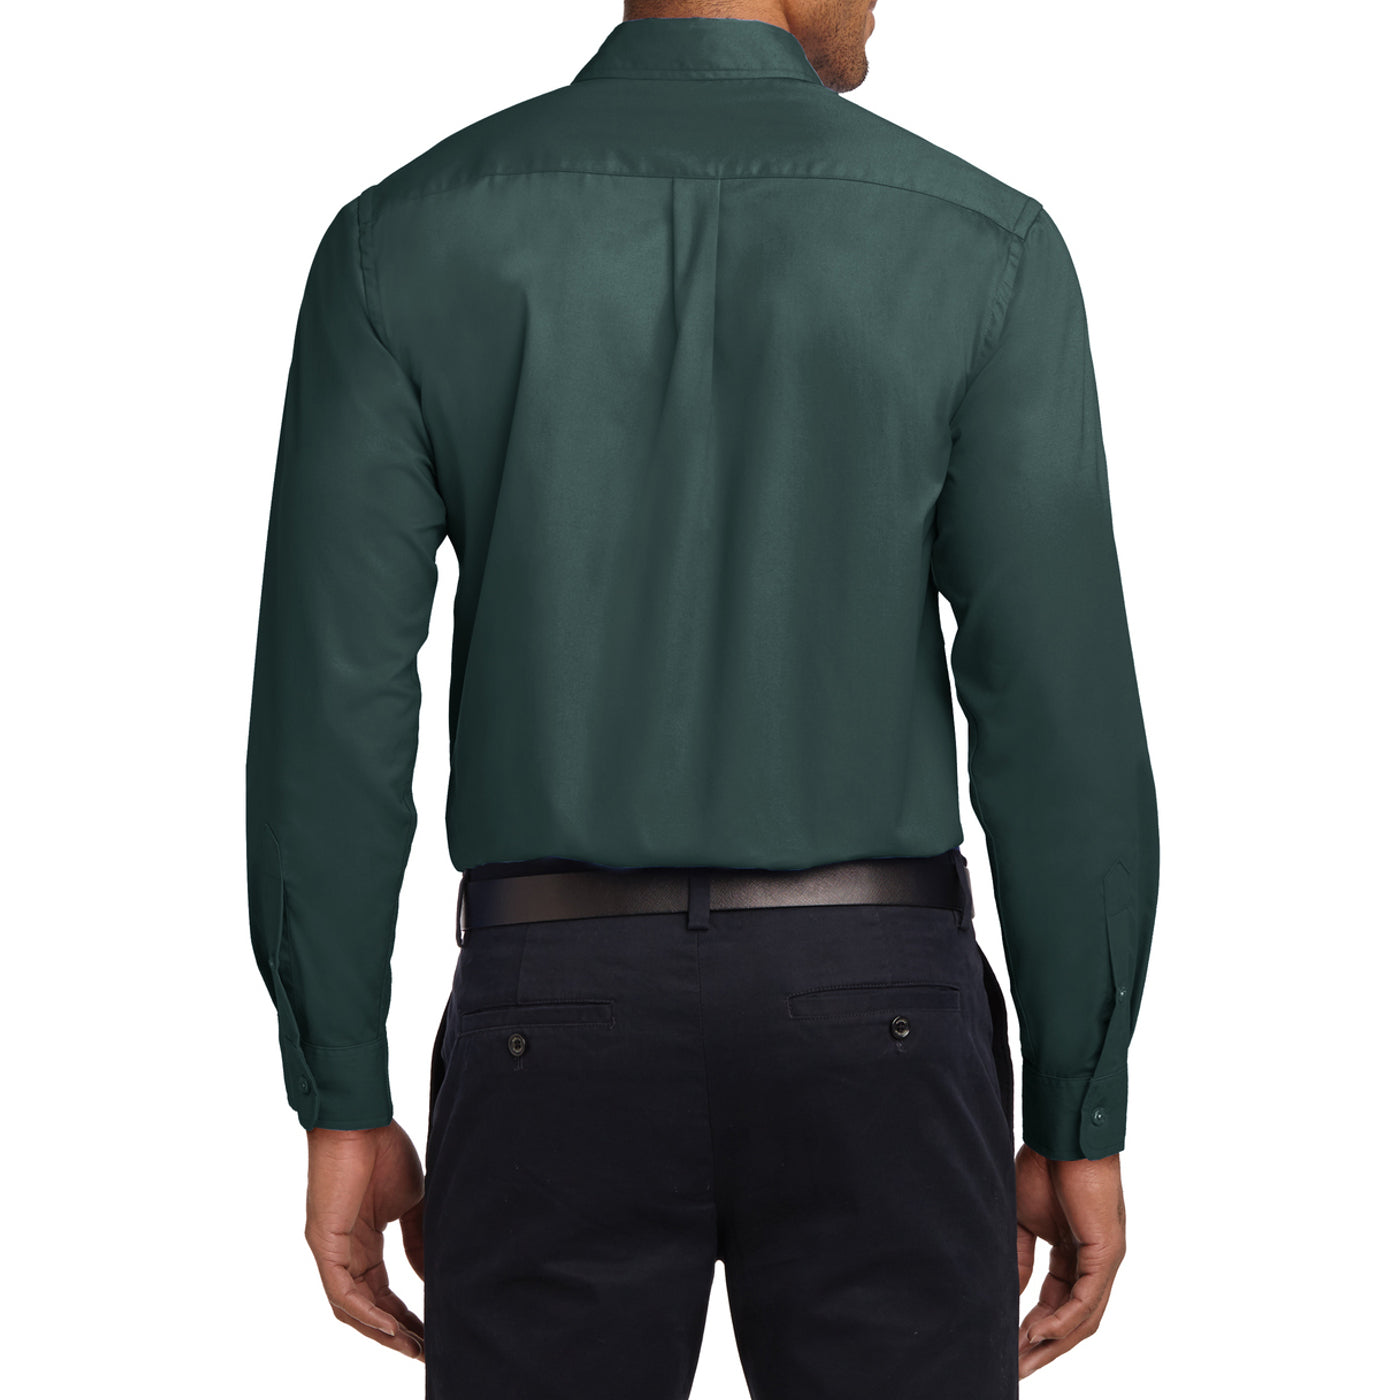 Men's Long Sleeve Easy Care Shirt - Dark Green/ Navy - Back